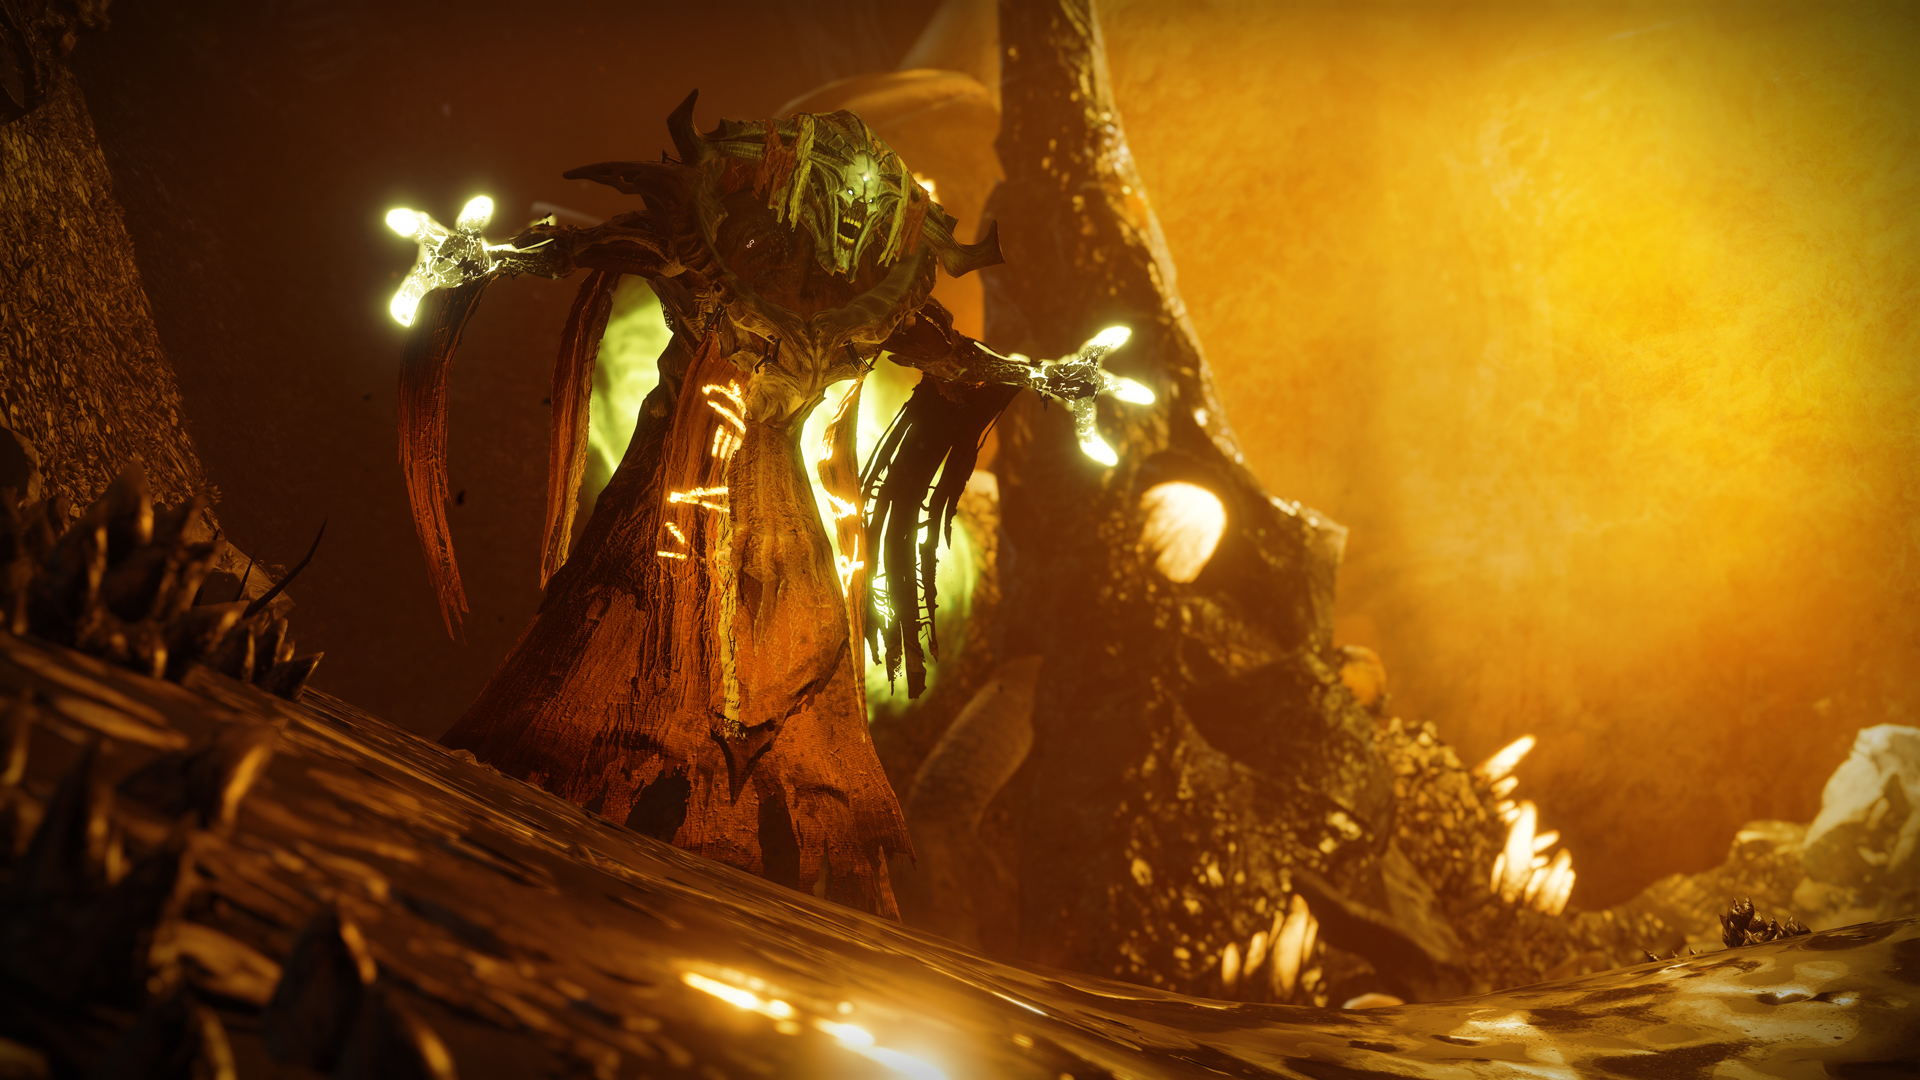 Destiny 2: Warmind Cinematic Introduces Ana Bray, an Icy Mars, and the Shadow of Nokris